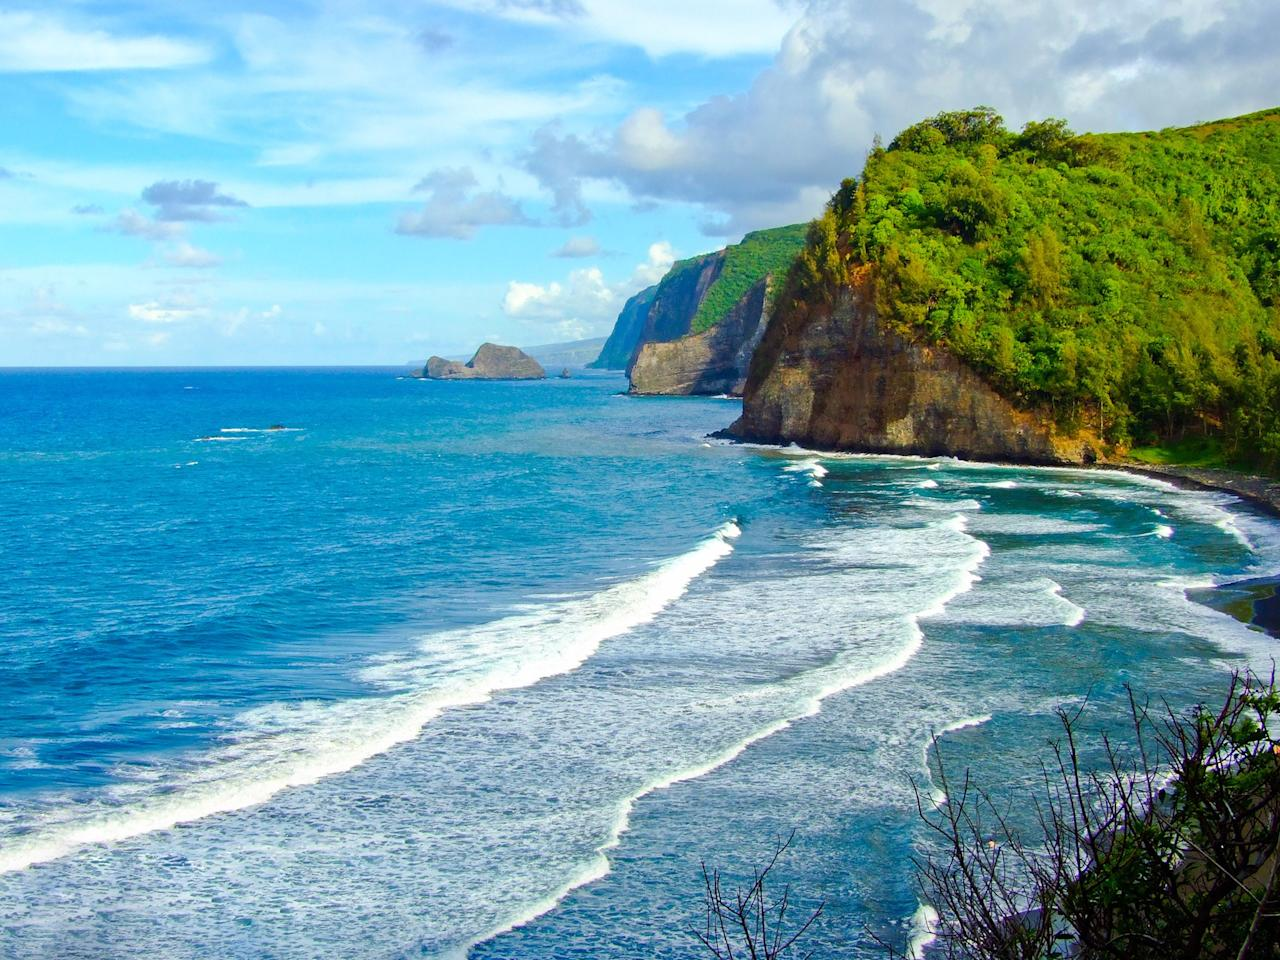 """<p>The incredibly varied landscape of <a href=""""http://www.cntraveler.com/stories/2012-10-29/big-island-hawaii-hiking-adventure-landscapes-beaches-lava-fields?mbid=synd_yahoo_rss"""">Hawaii's largest island</a> is staggering, from snow-capped peaks and one of the world's most active volcanoes (Kilauea) to tropical coves and placid fishing villages.</p> <p><strong>Pro tip:</strong> <a href=""""http://www.nps.gov/havo/index.htm"""">Hawaii Volcanoes National Park</a> is home to three active volcanoes (though they've been quiet since mid-2018). This UNESCO World Heritage Site has more than 140 miles of hiking trails to explore, traveling through rainforests, across black lava fields, and up rugged peaks.</p> <p><strong>Getting there:</strong> Regular flights travel between Honolulu and the Big Island's two largest towns, Hilo and Kona, but airlines like Hawaiian Airlines, Alaska Airlines, and American Airlines now offer non-stop service from the West Coast.</p>"""